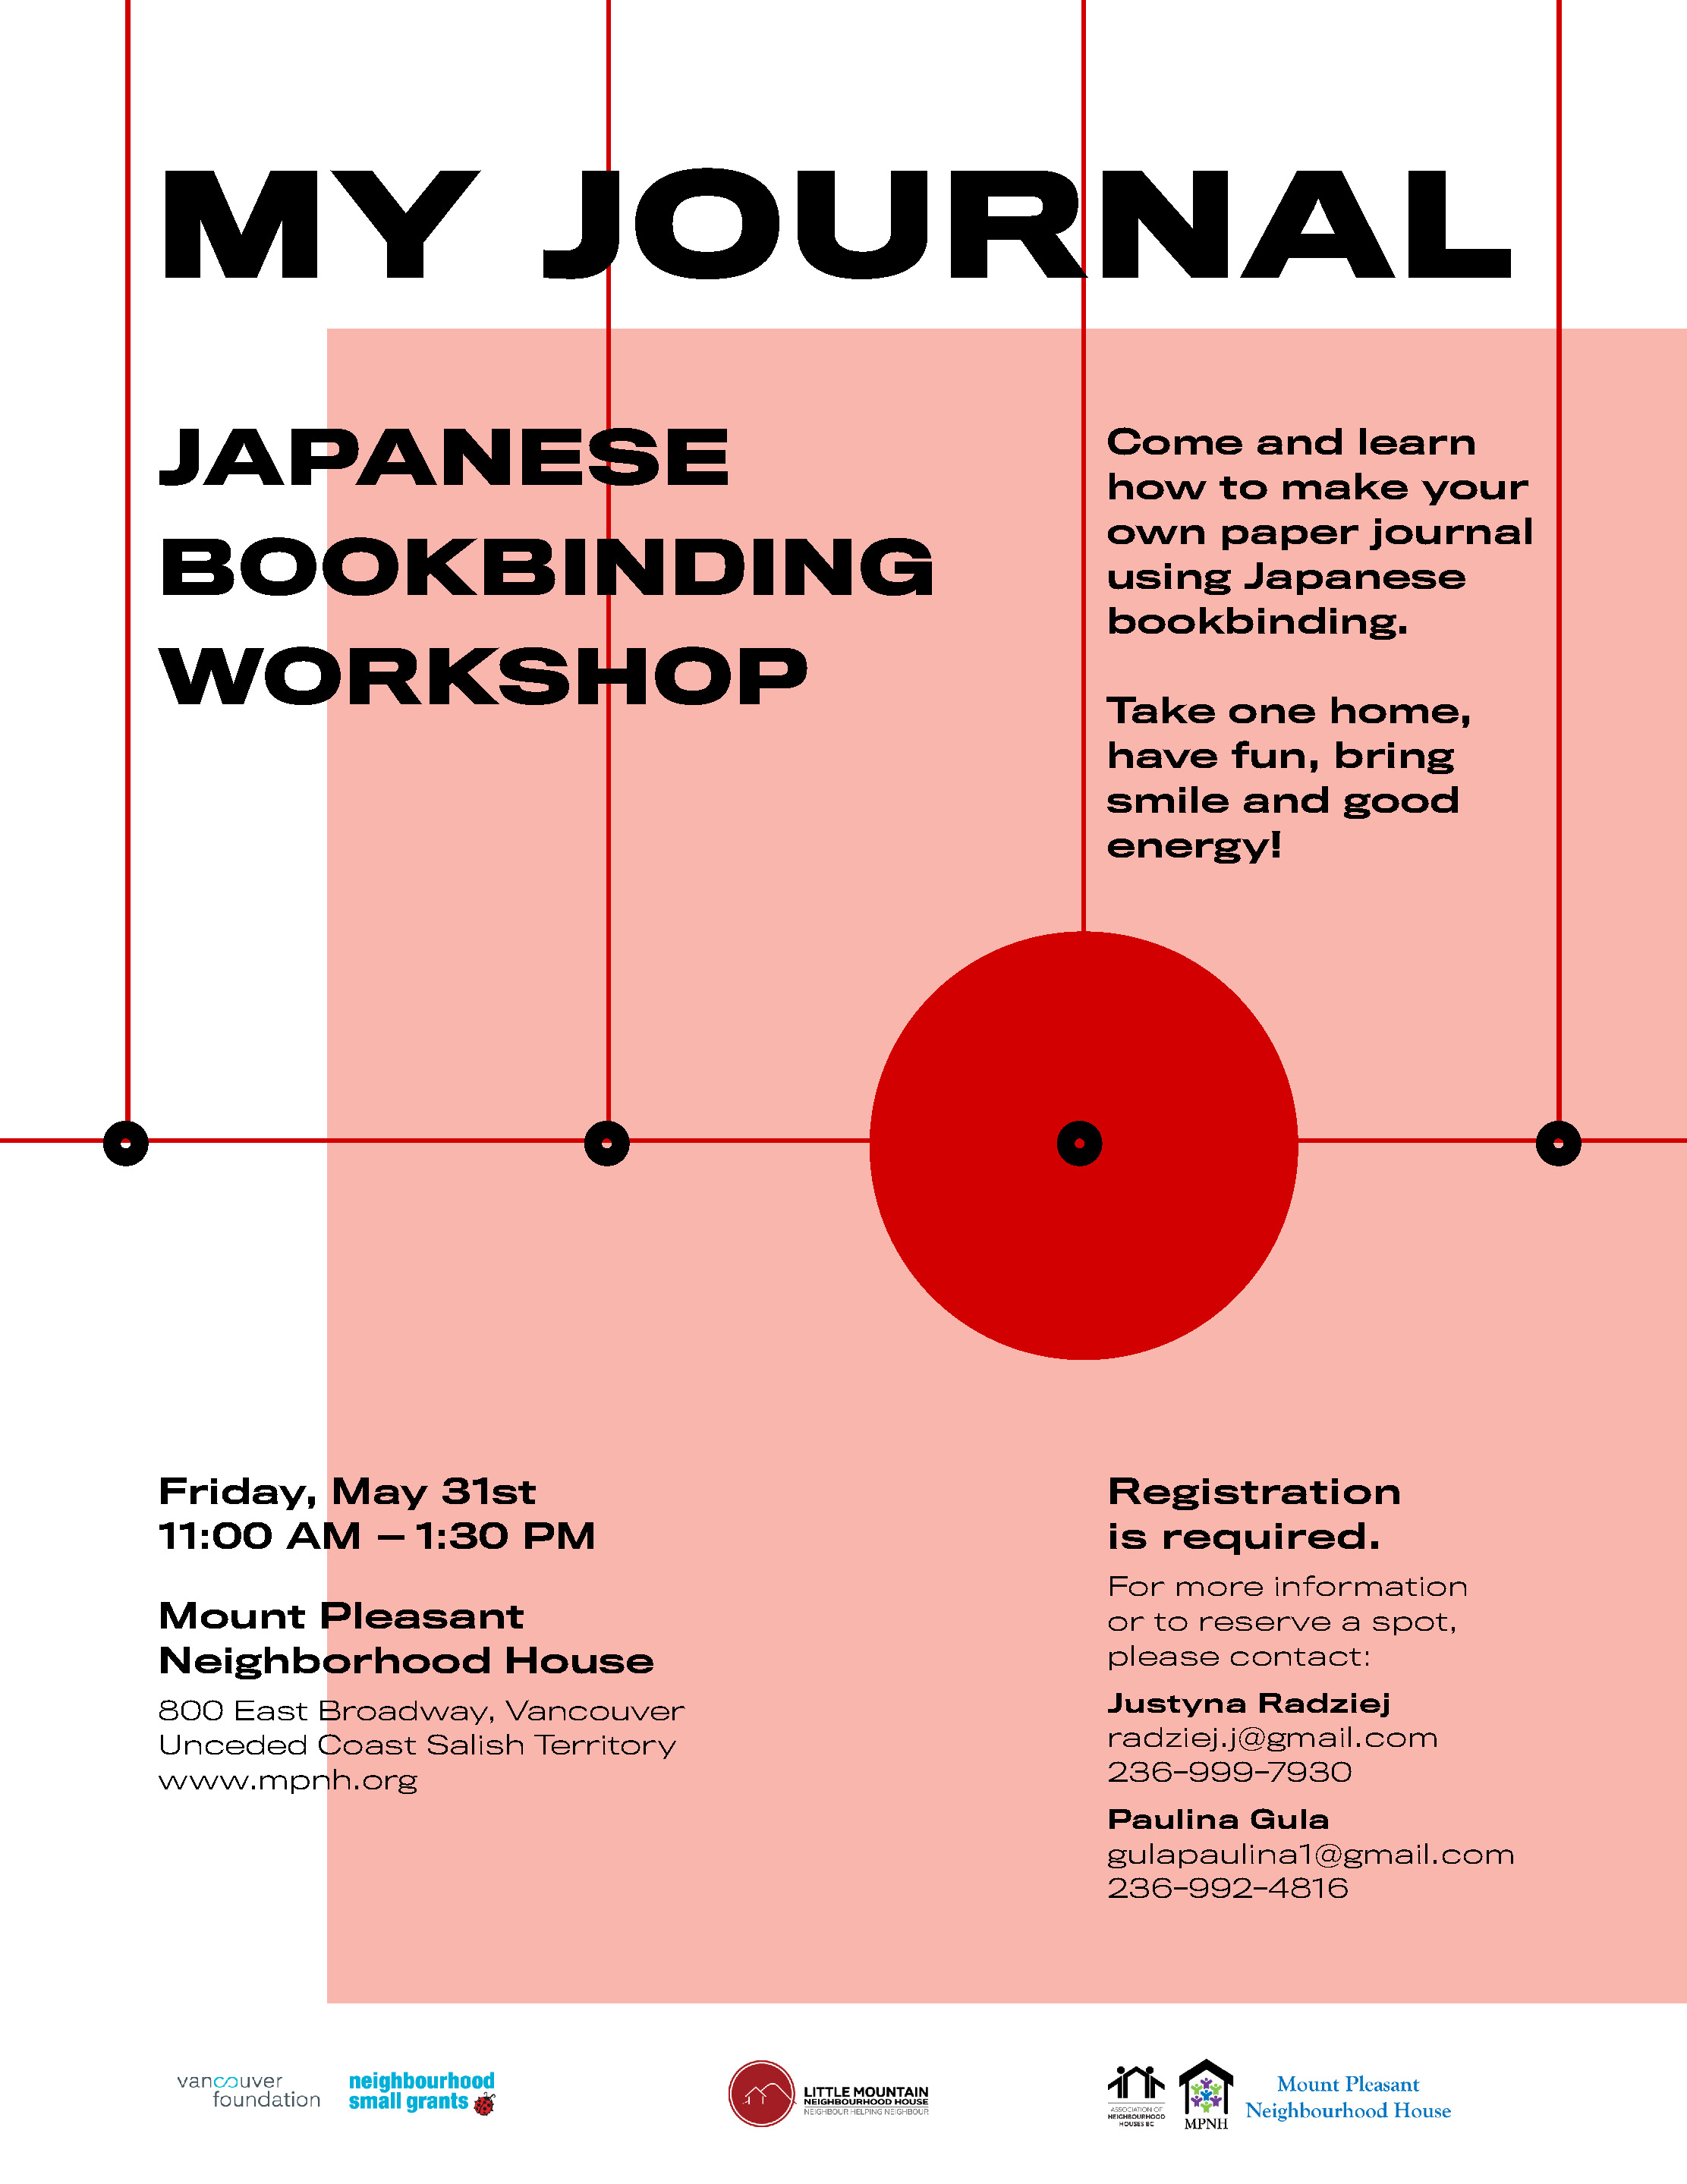 An image of the poster with event details, featuring a white background and a red circle, similar to the Japanese flag.